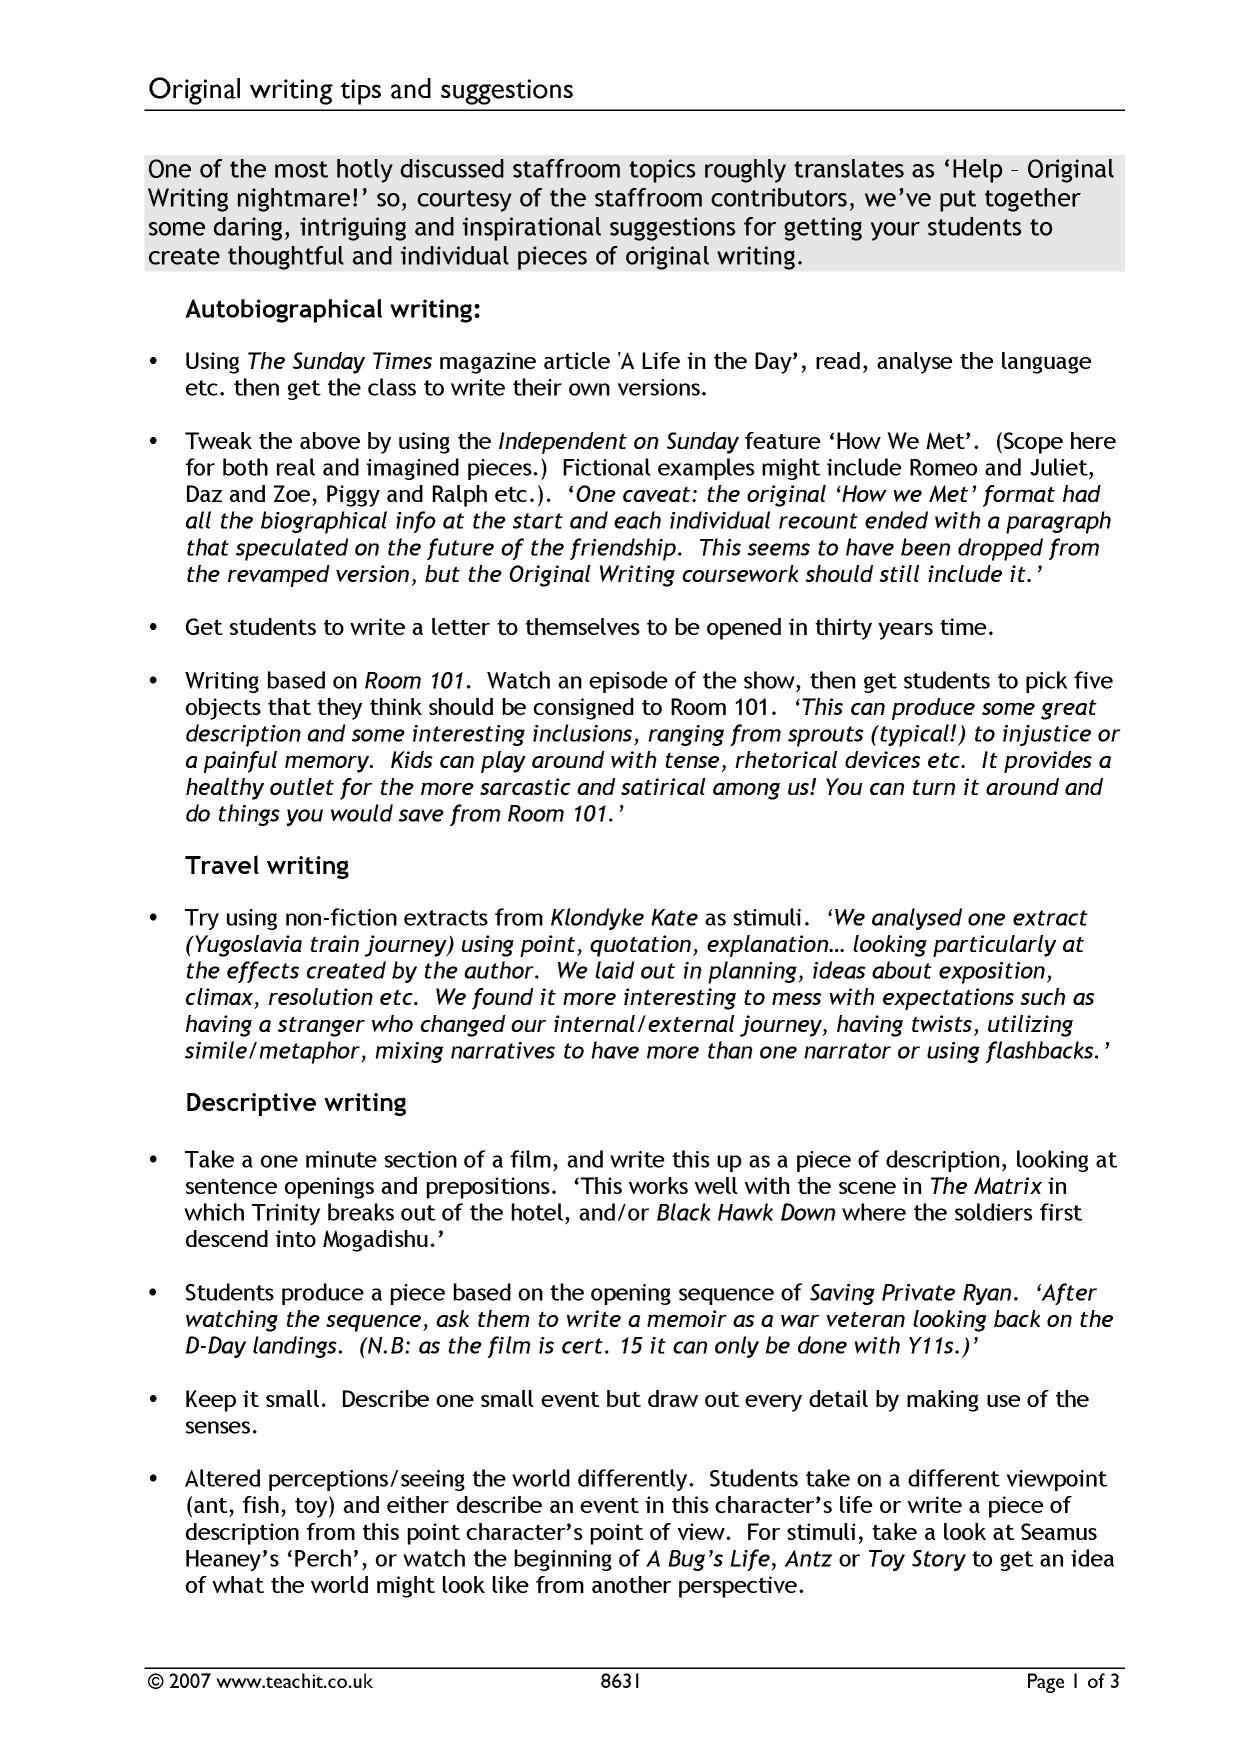 Wedding planning research paper